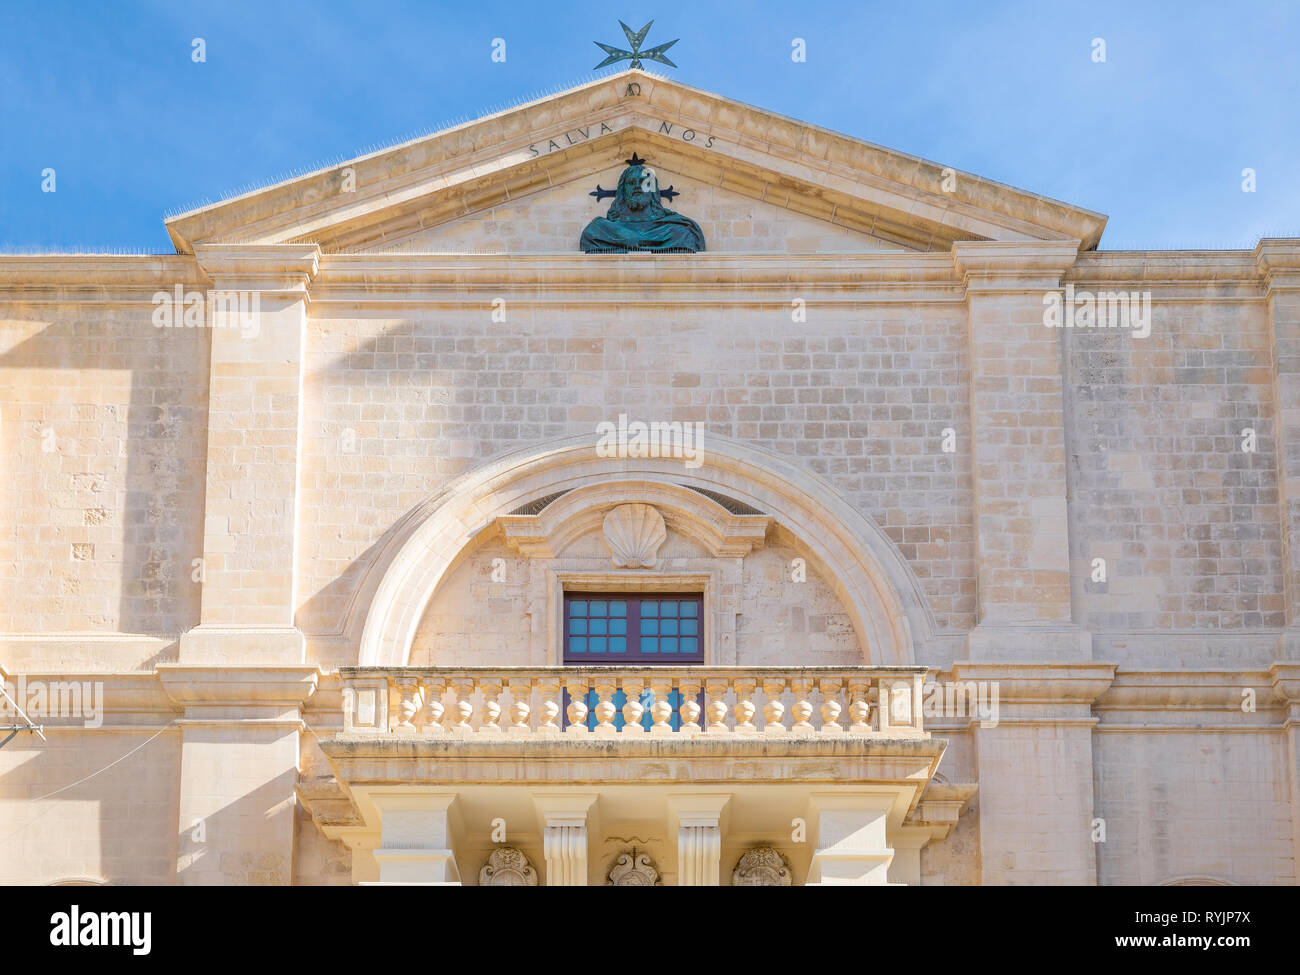 Malta, Valletta, the facade of the St John Cathedral,detail of the portal - Stock Image